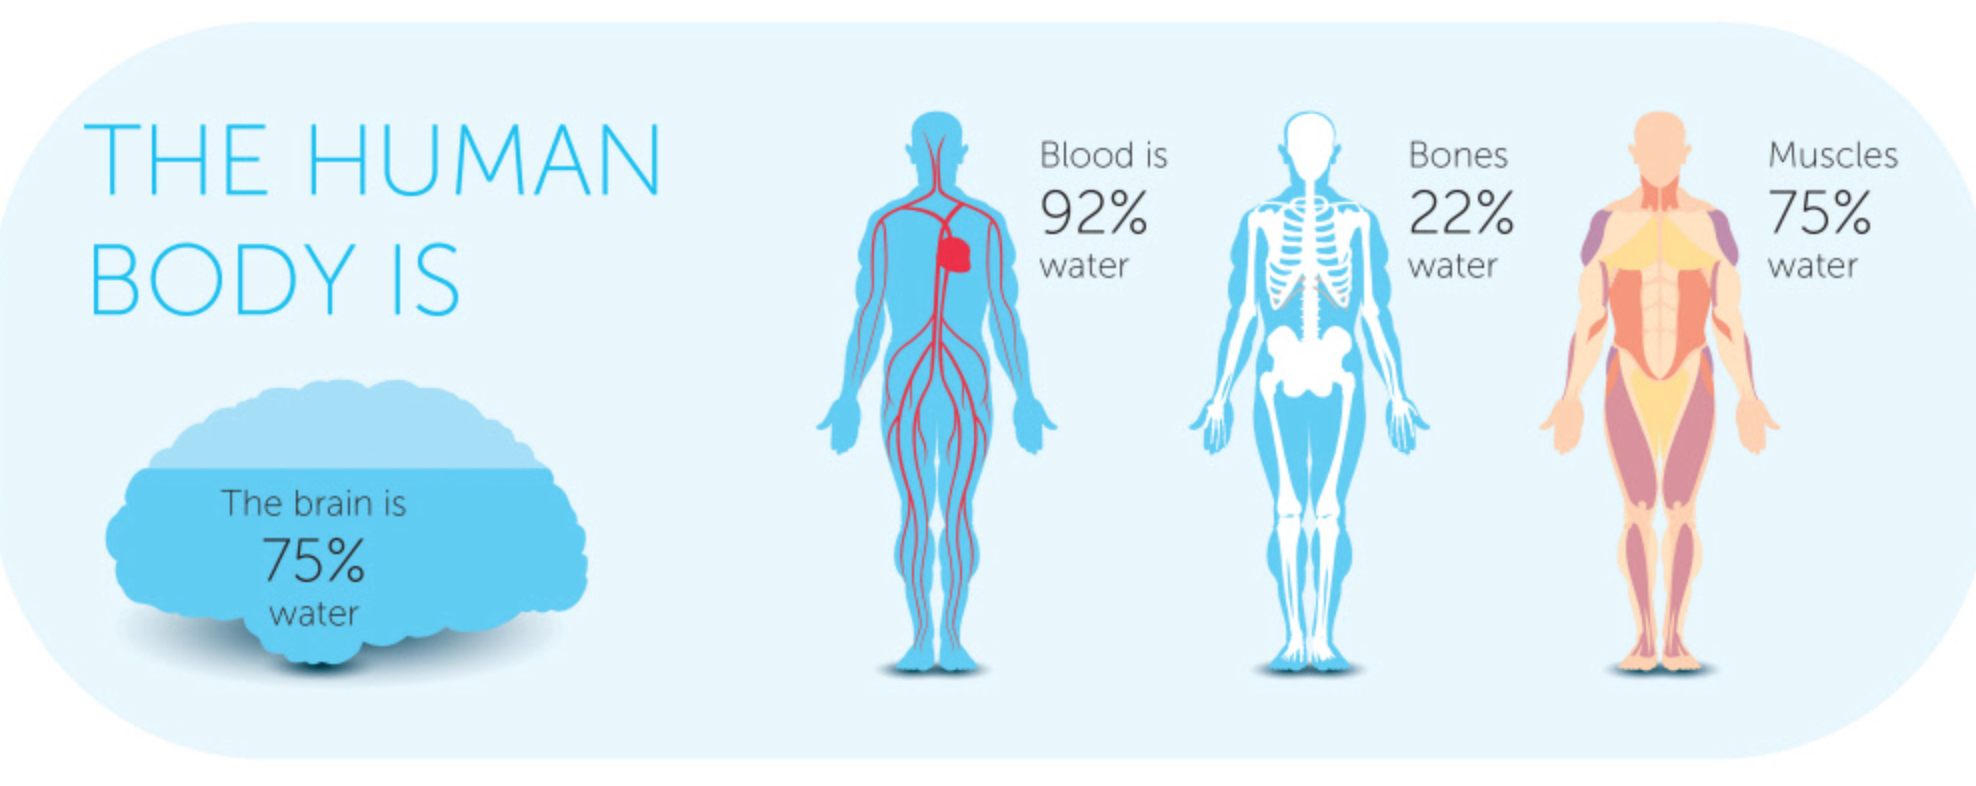 water-is-life-importance-of-hydration.png